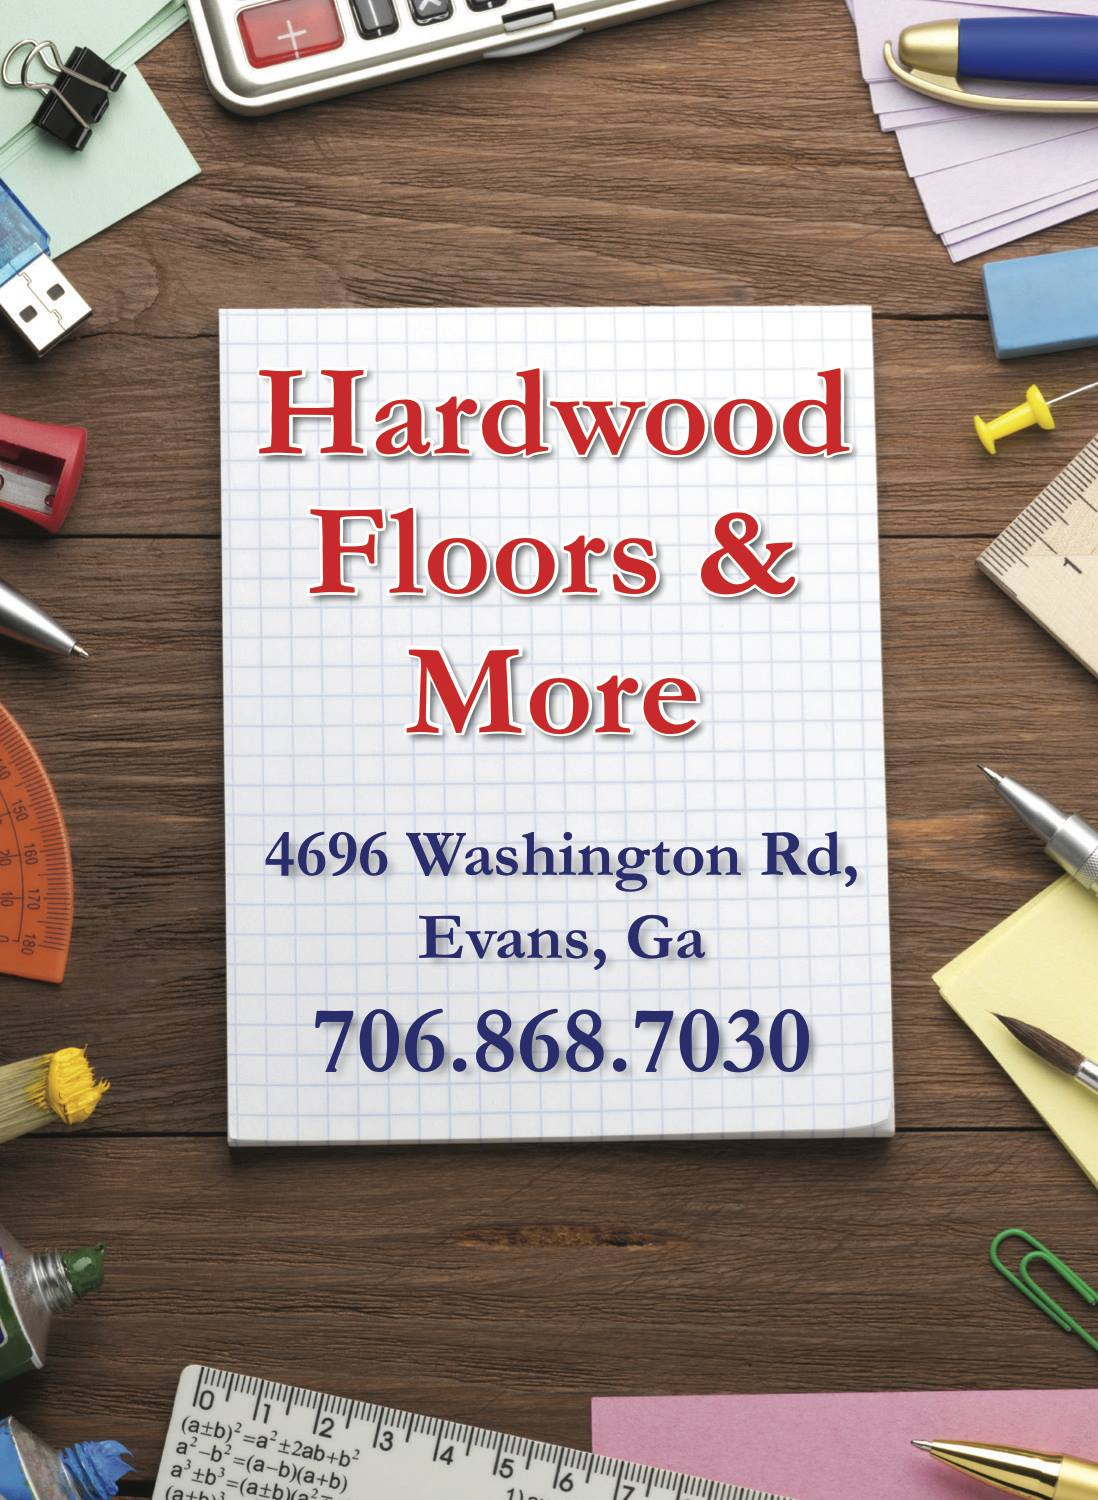 Hardwood Floors Logo